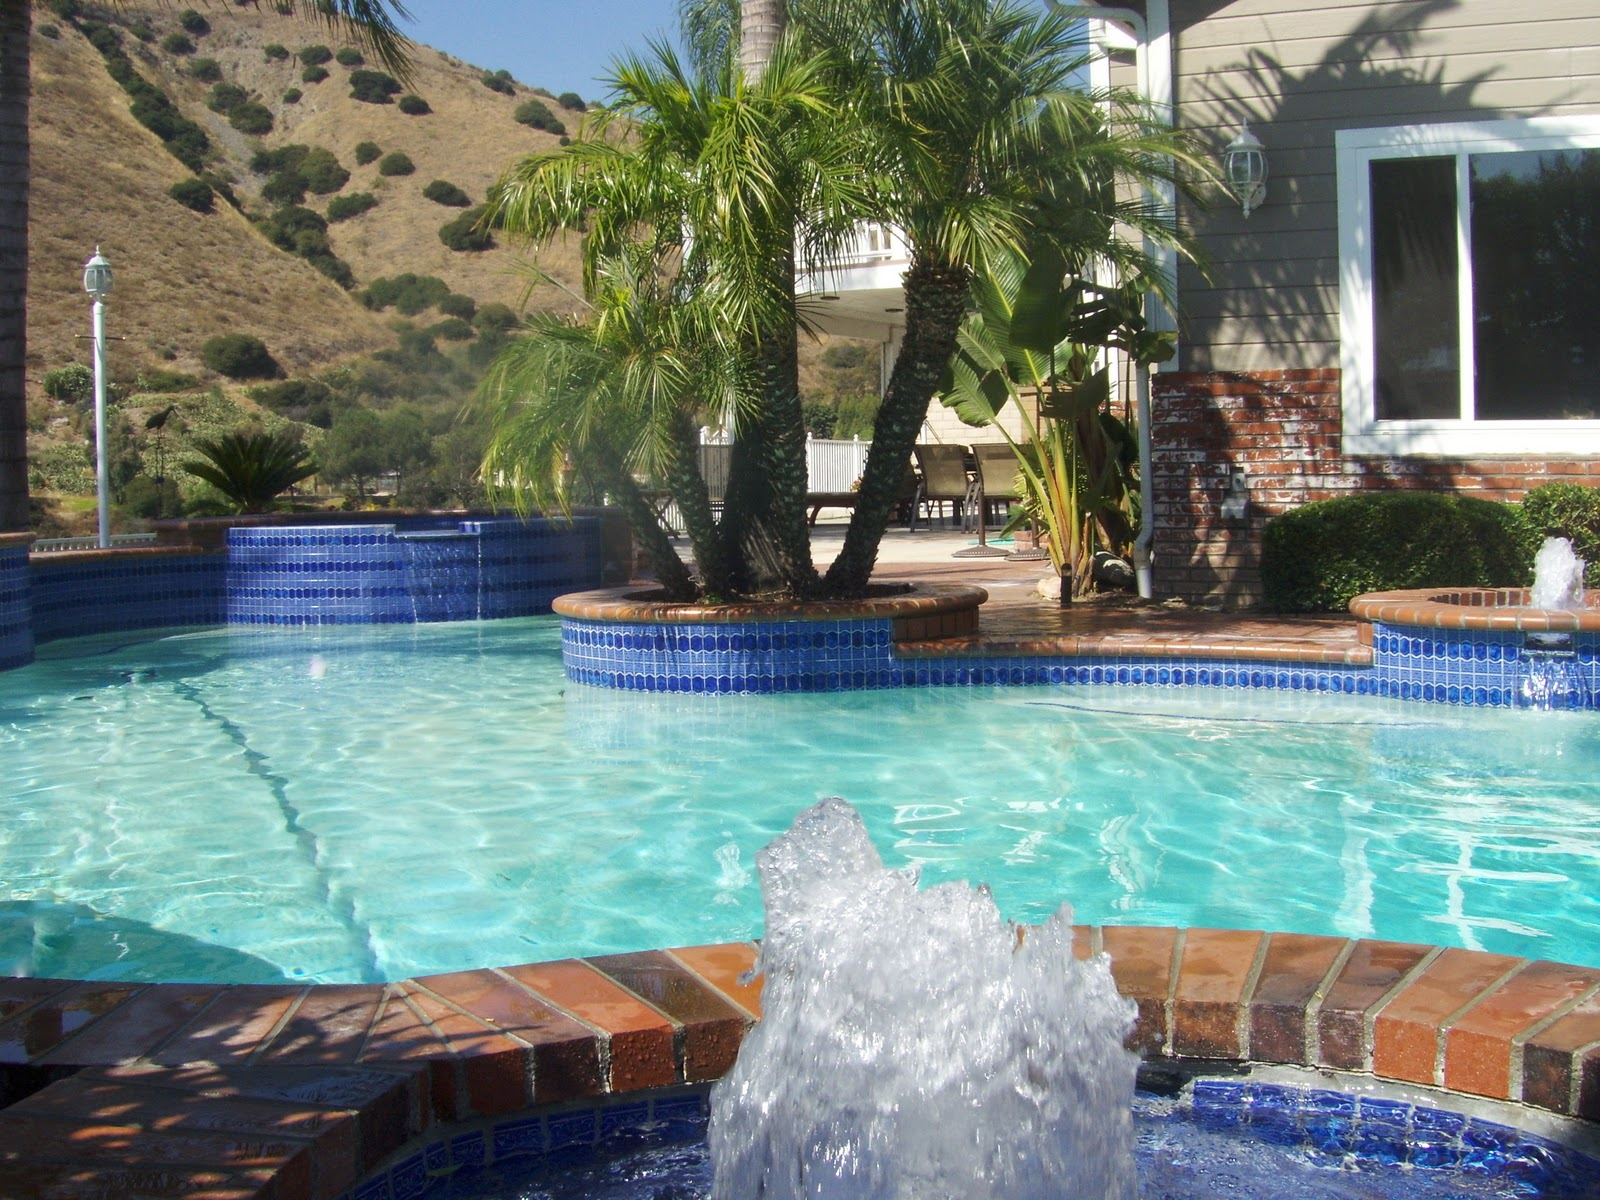 Pool Tile Cleaning Pro 877 835 8763 Orange County Los Angeles Riverside Palm Springs Brea La